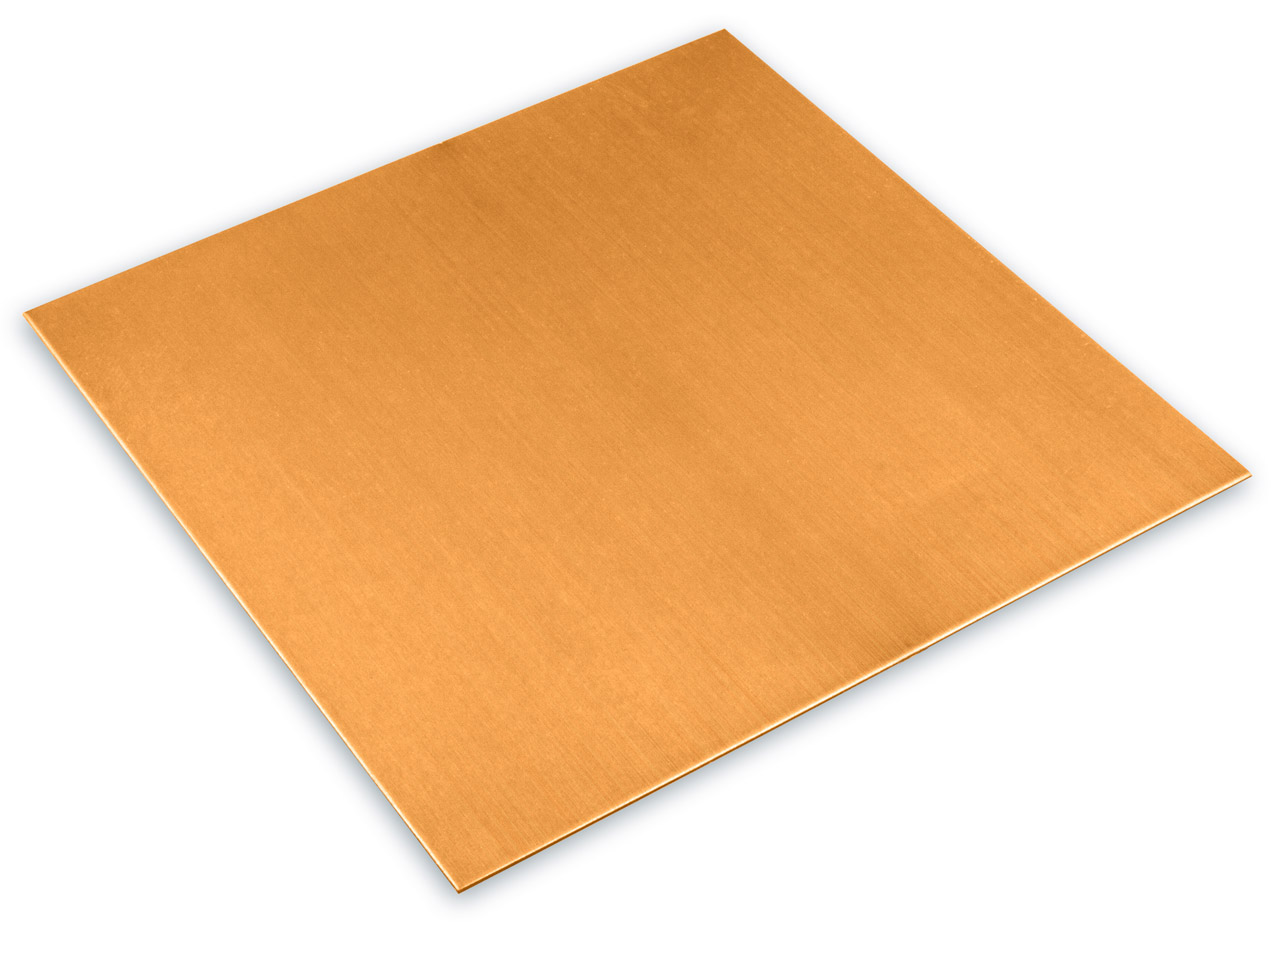 Copper Sheet 225x225x0.7mm